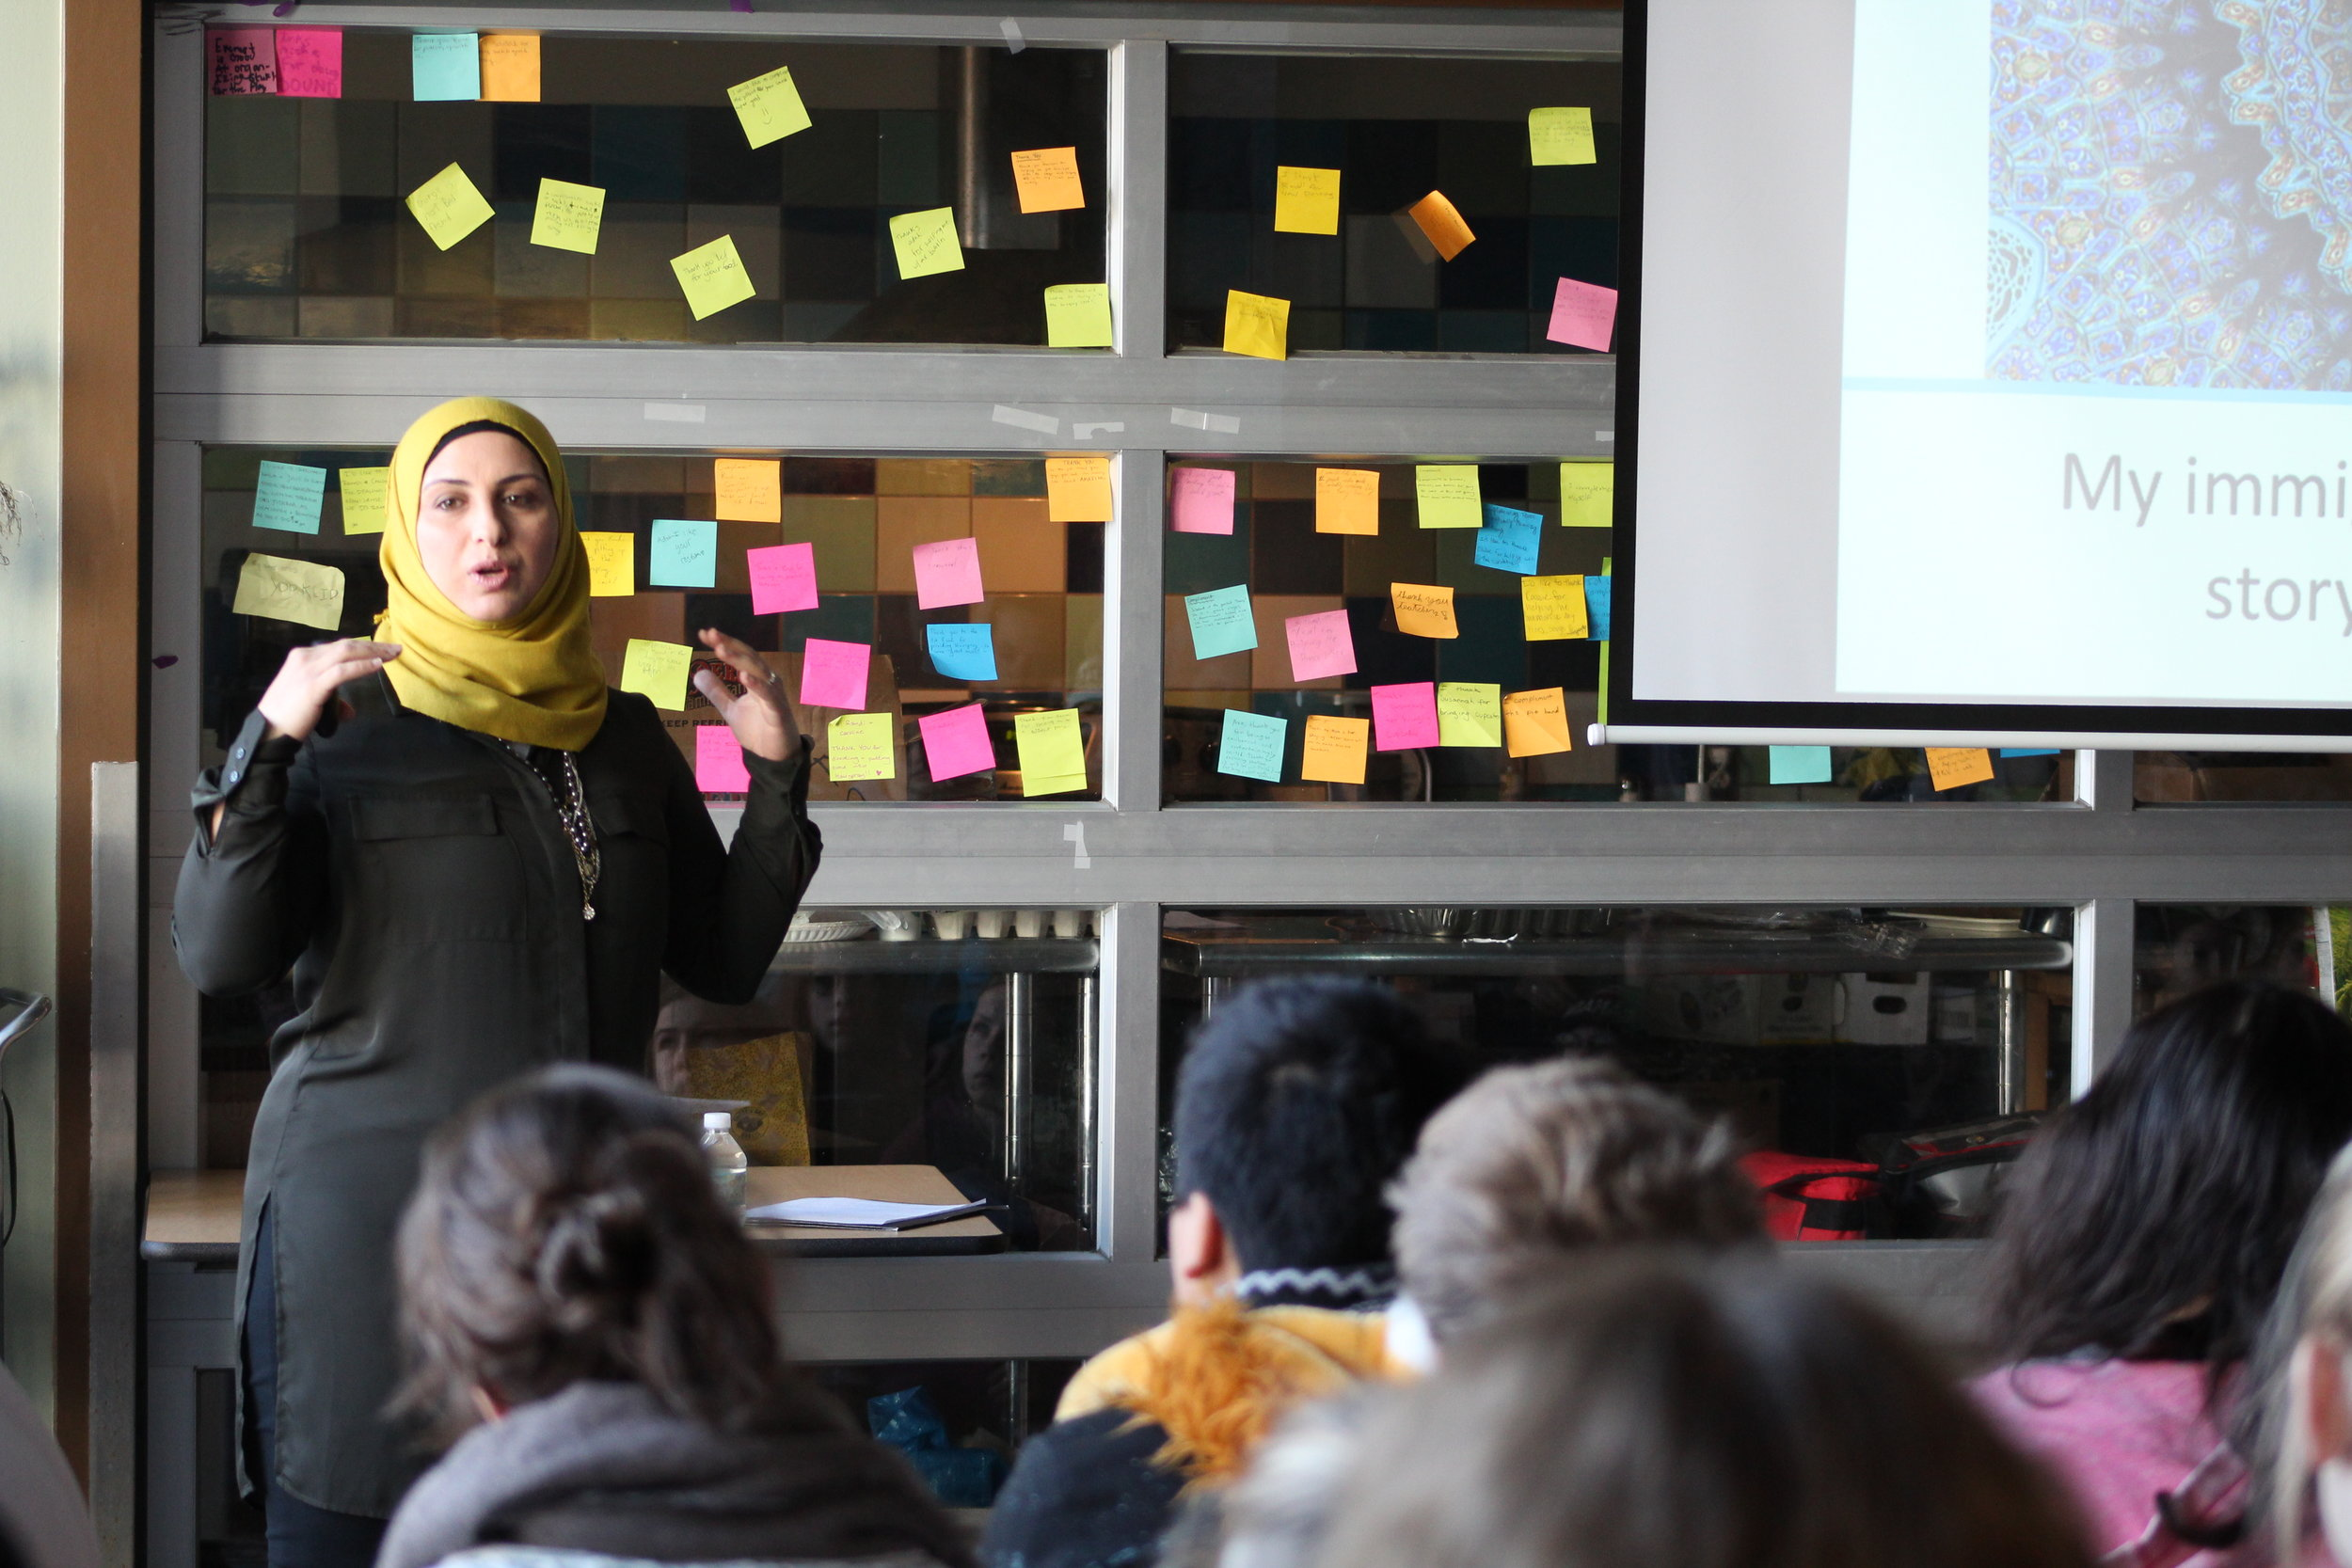 Keynote speaker Hanadi Chehabeddine speaks to a group of students about fighting fear and ignorance.